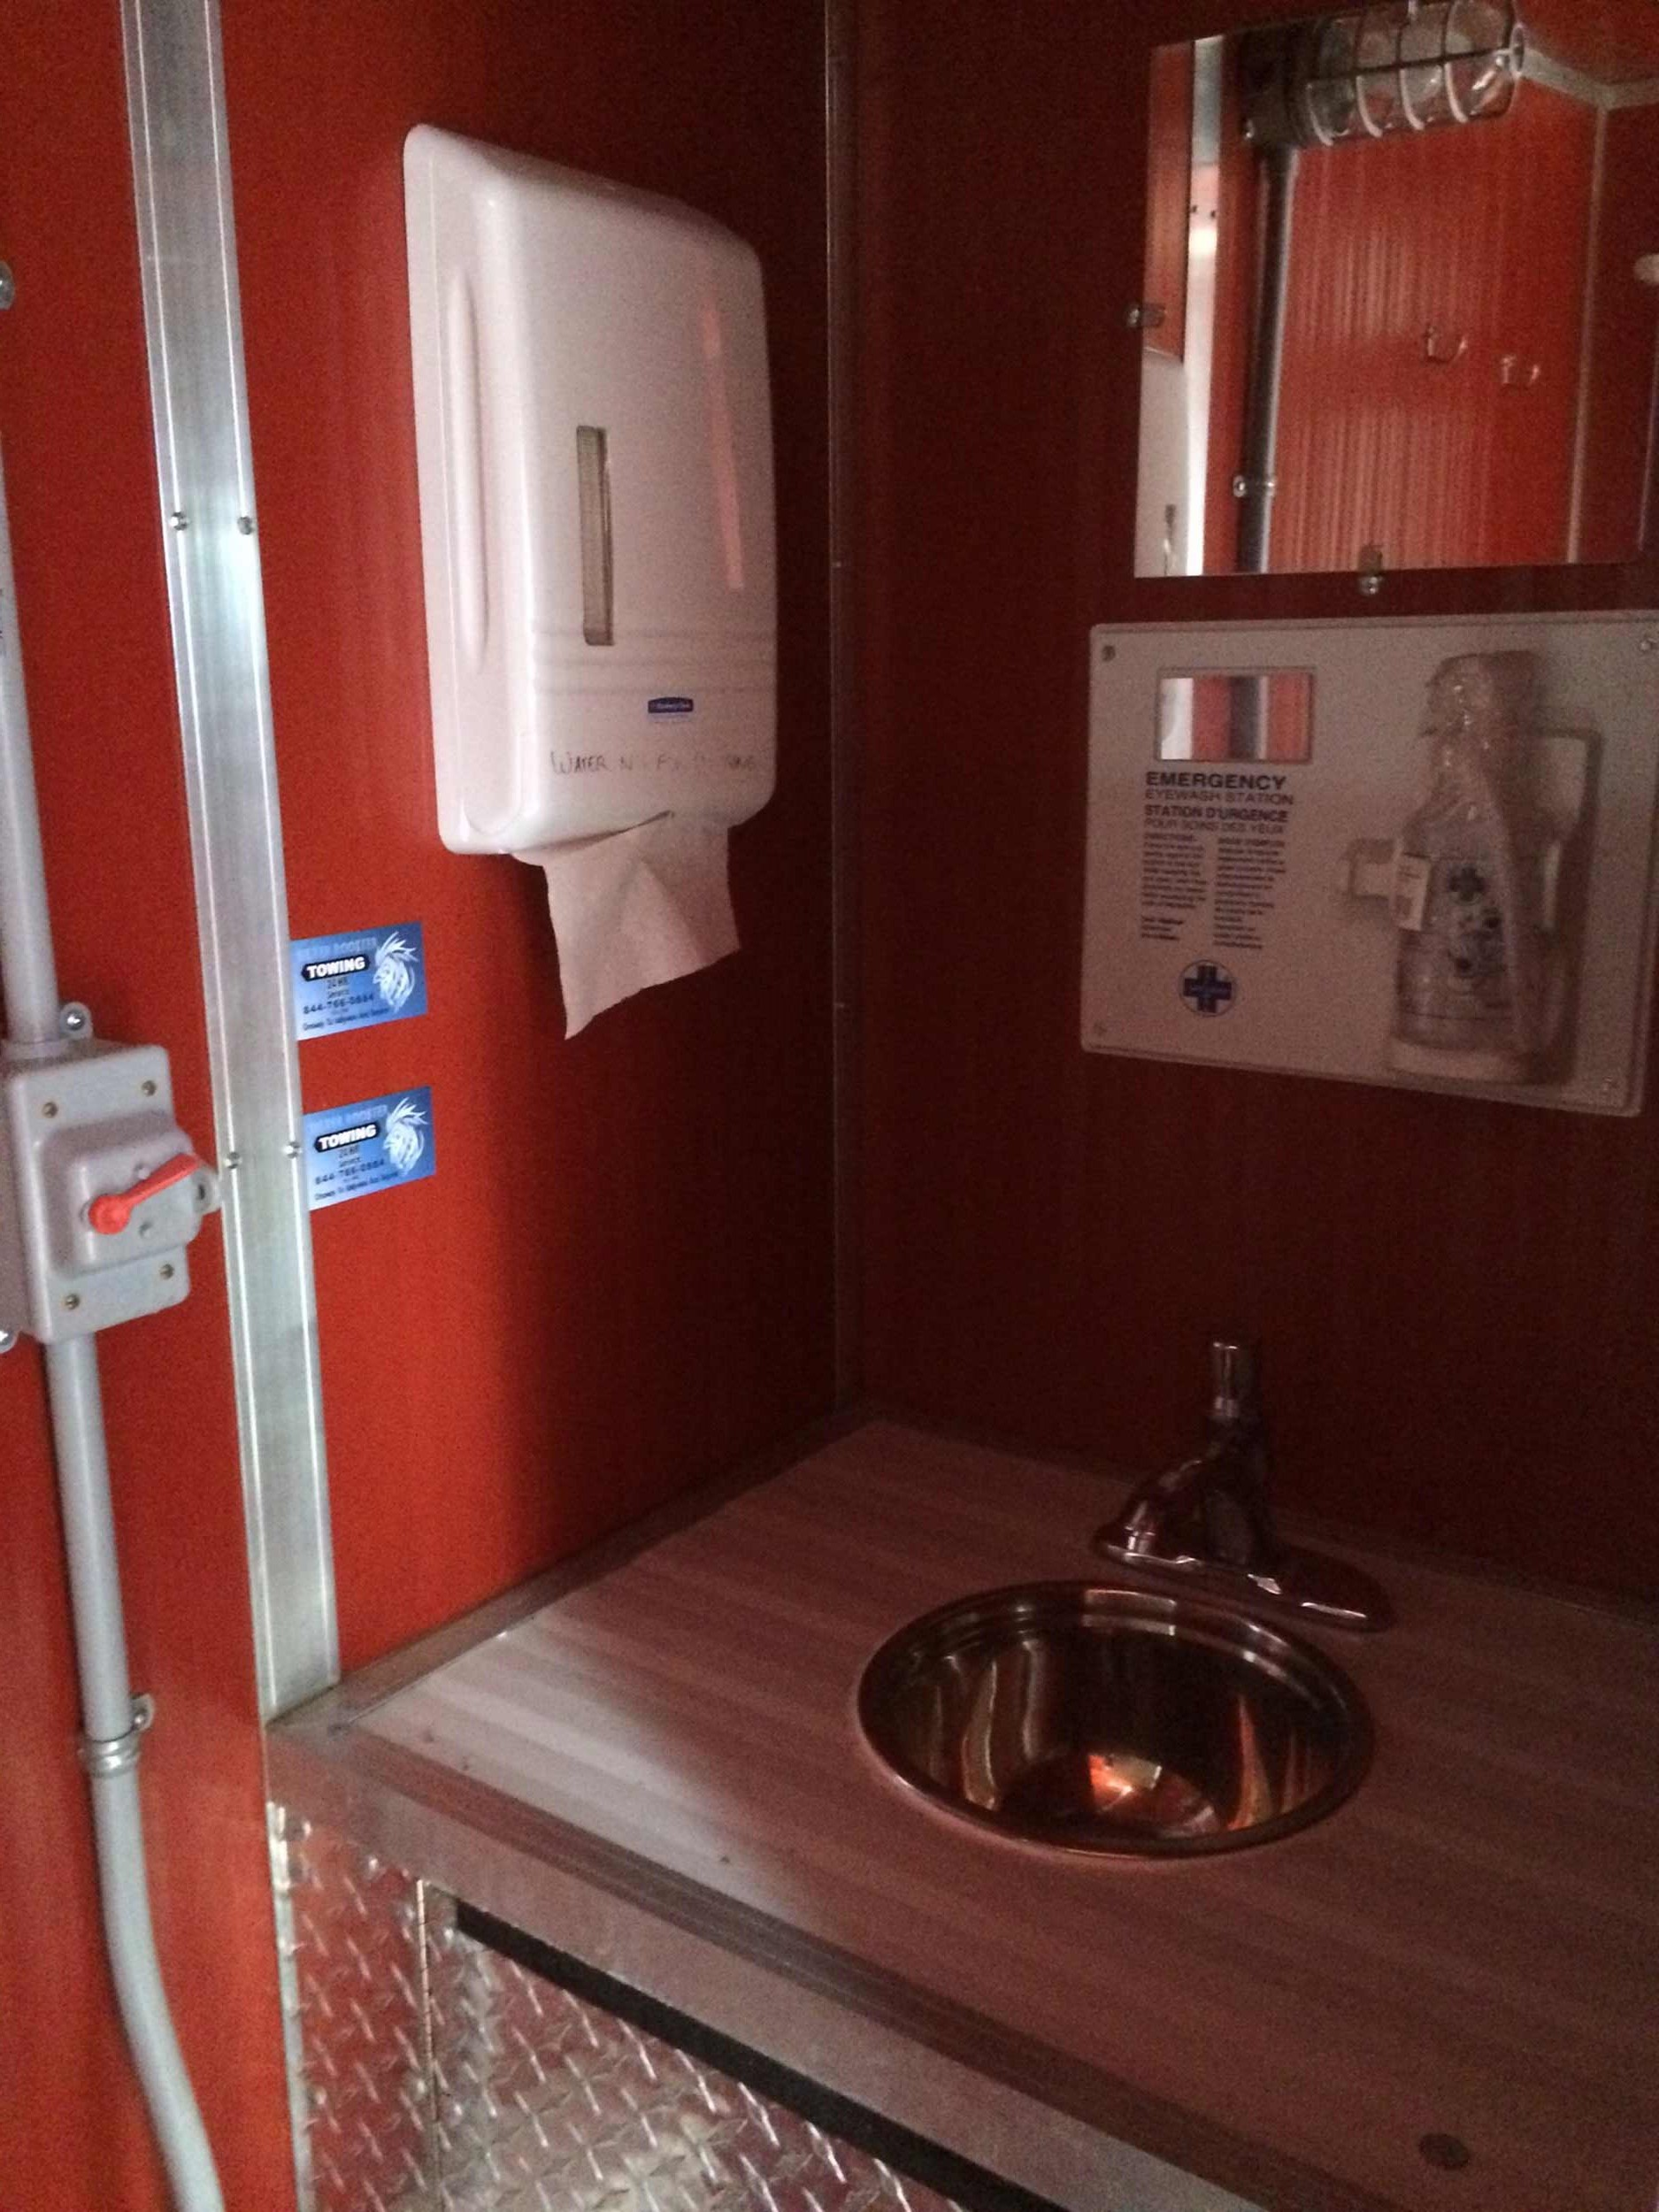 Interior-of-Heated-Executive-Portable-Toilets-by-Steelhead-Ventures